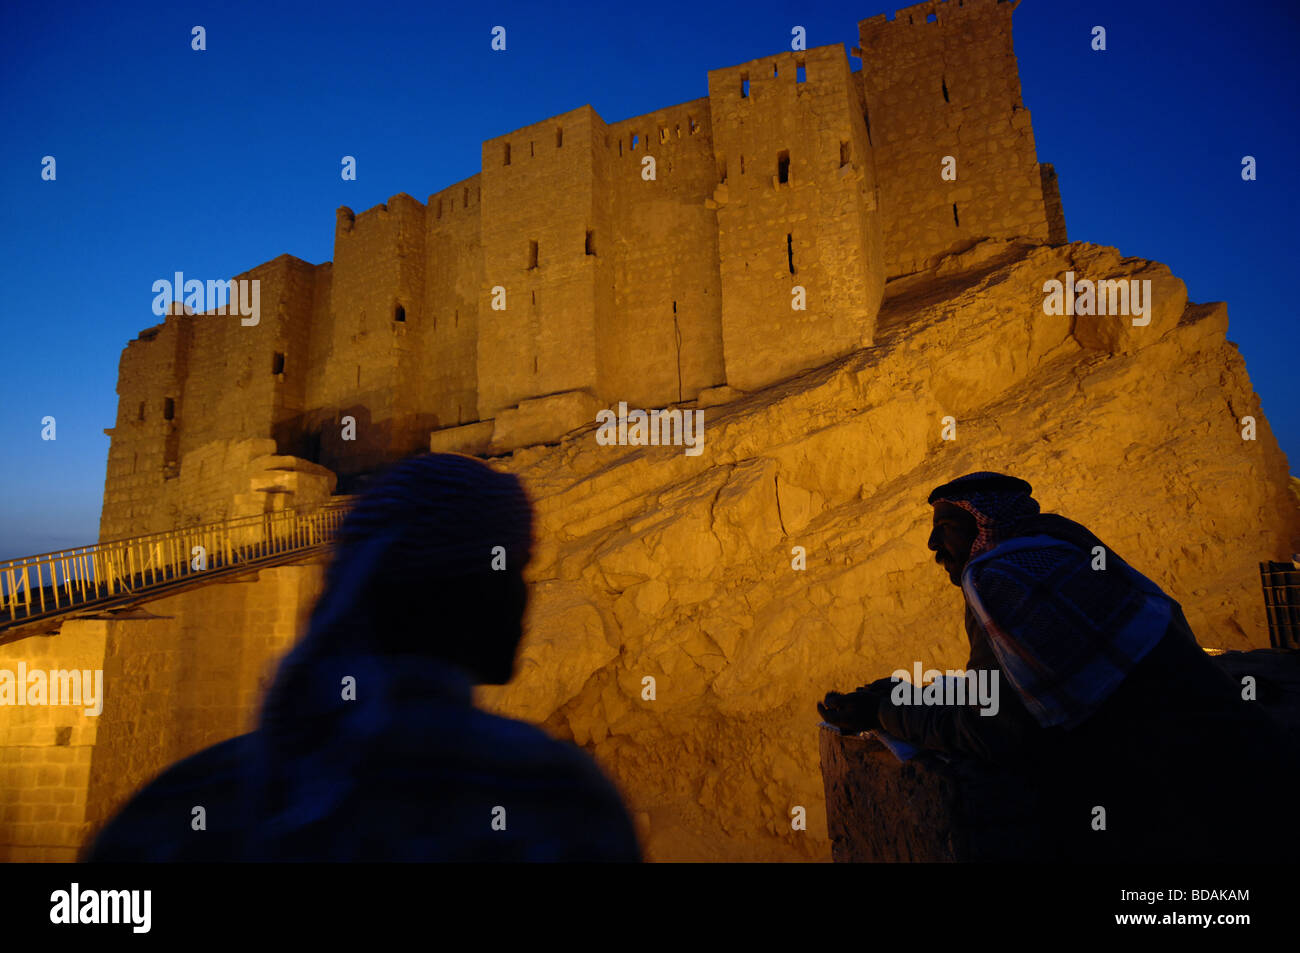 Bedouin outside the citadel of Palmyra Syria - Stock Image